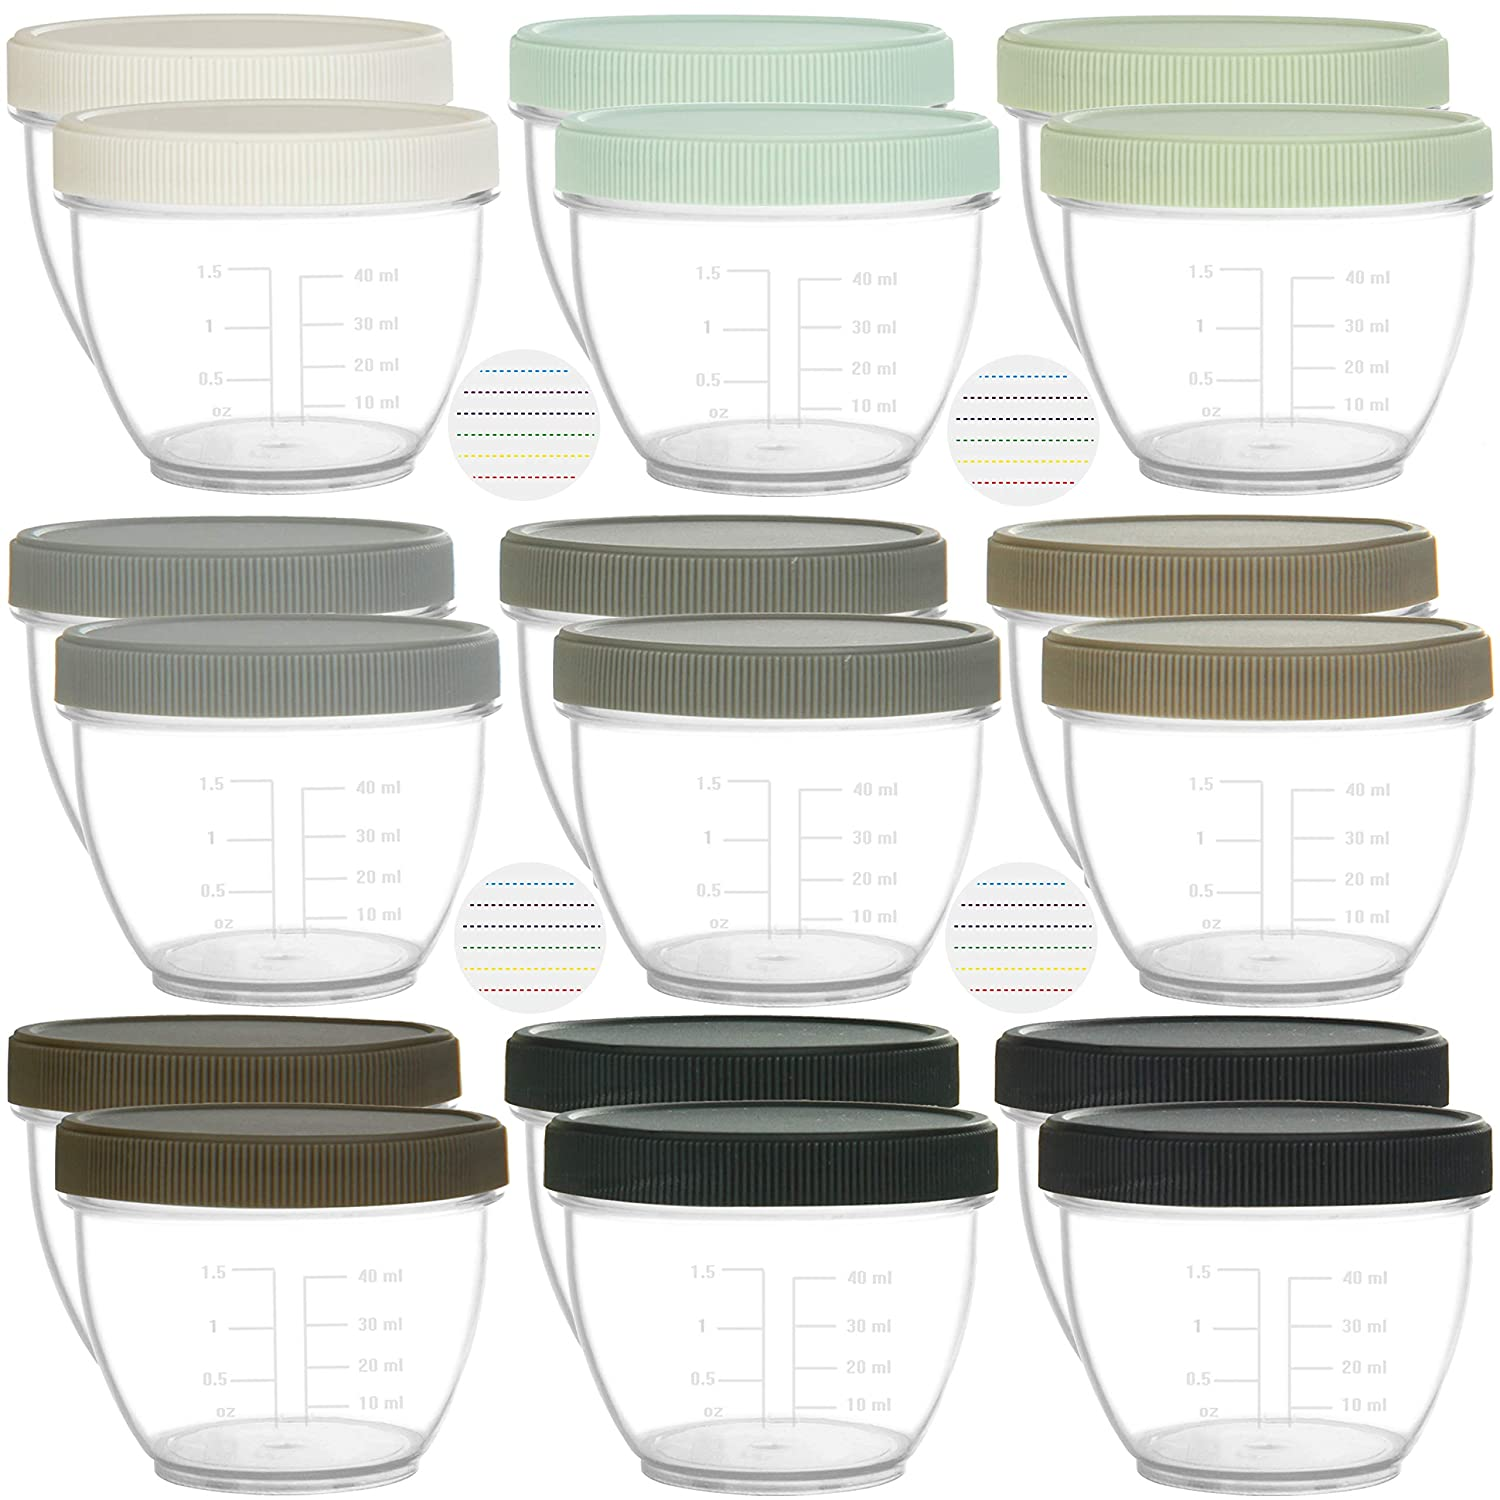 Youngever 18 Sets Baby Food Storage, 2 Ounce Baby Food Containers with Lids and Labels, 9 Urban Colors